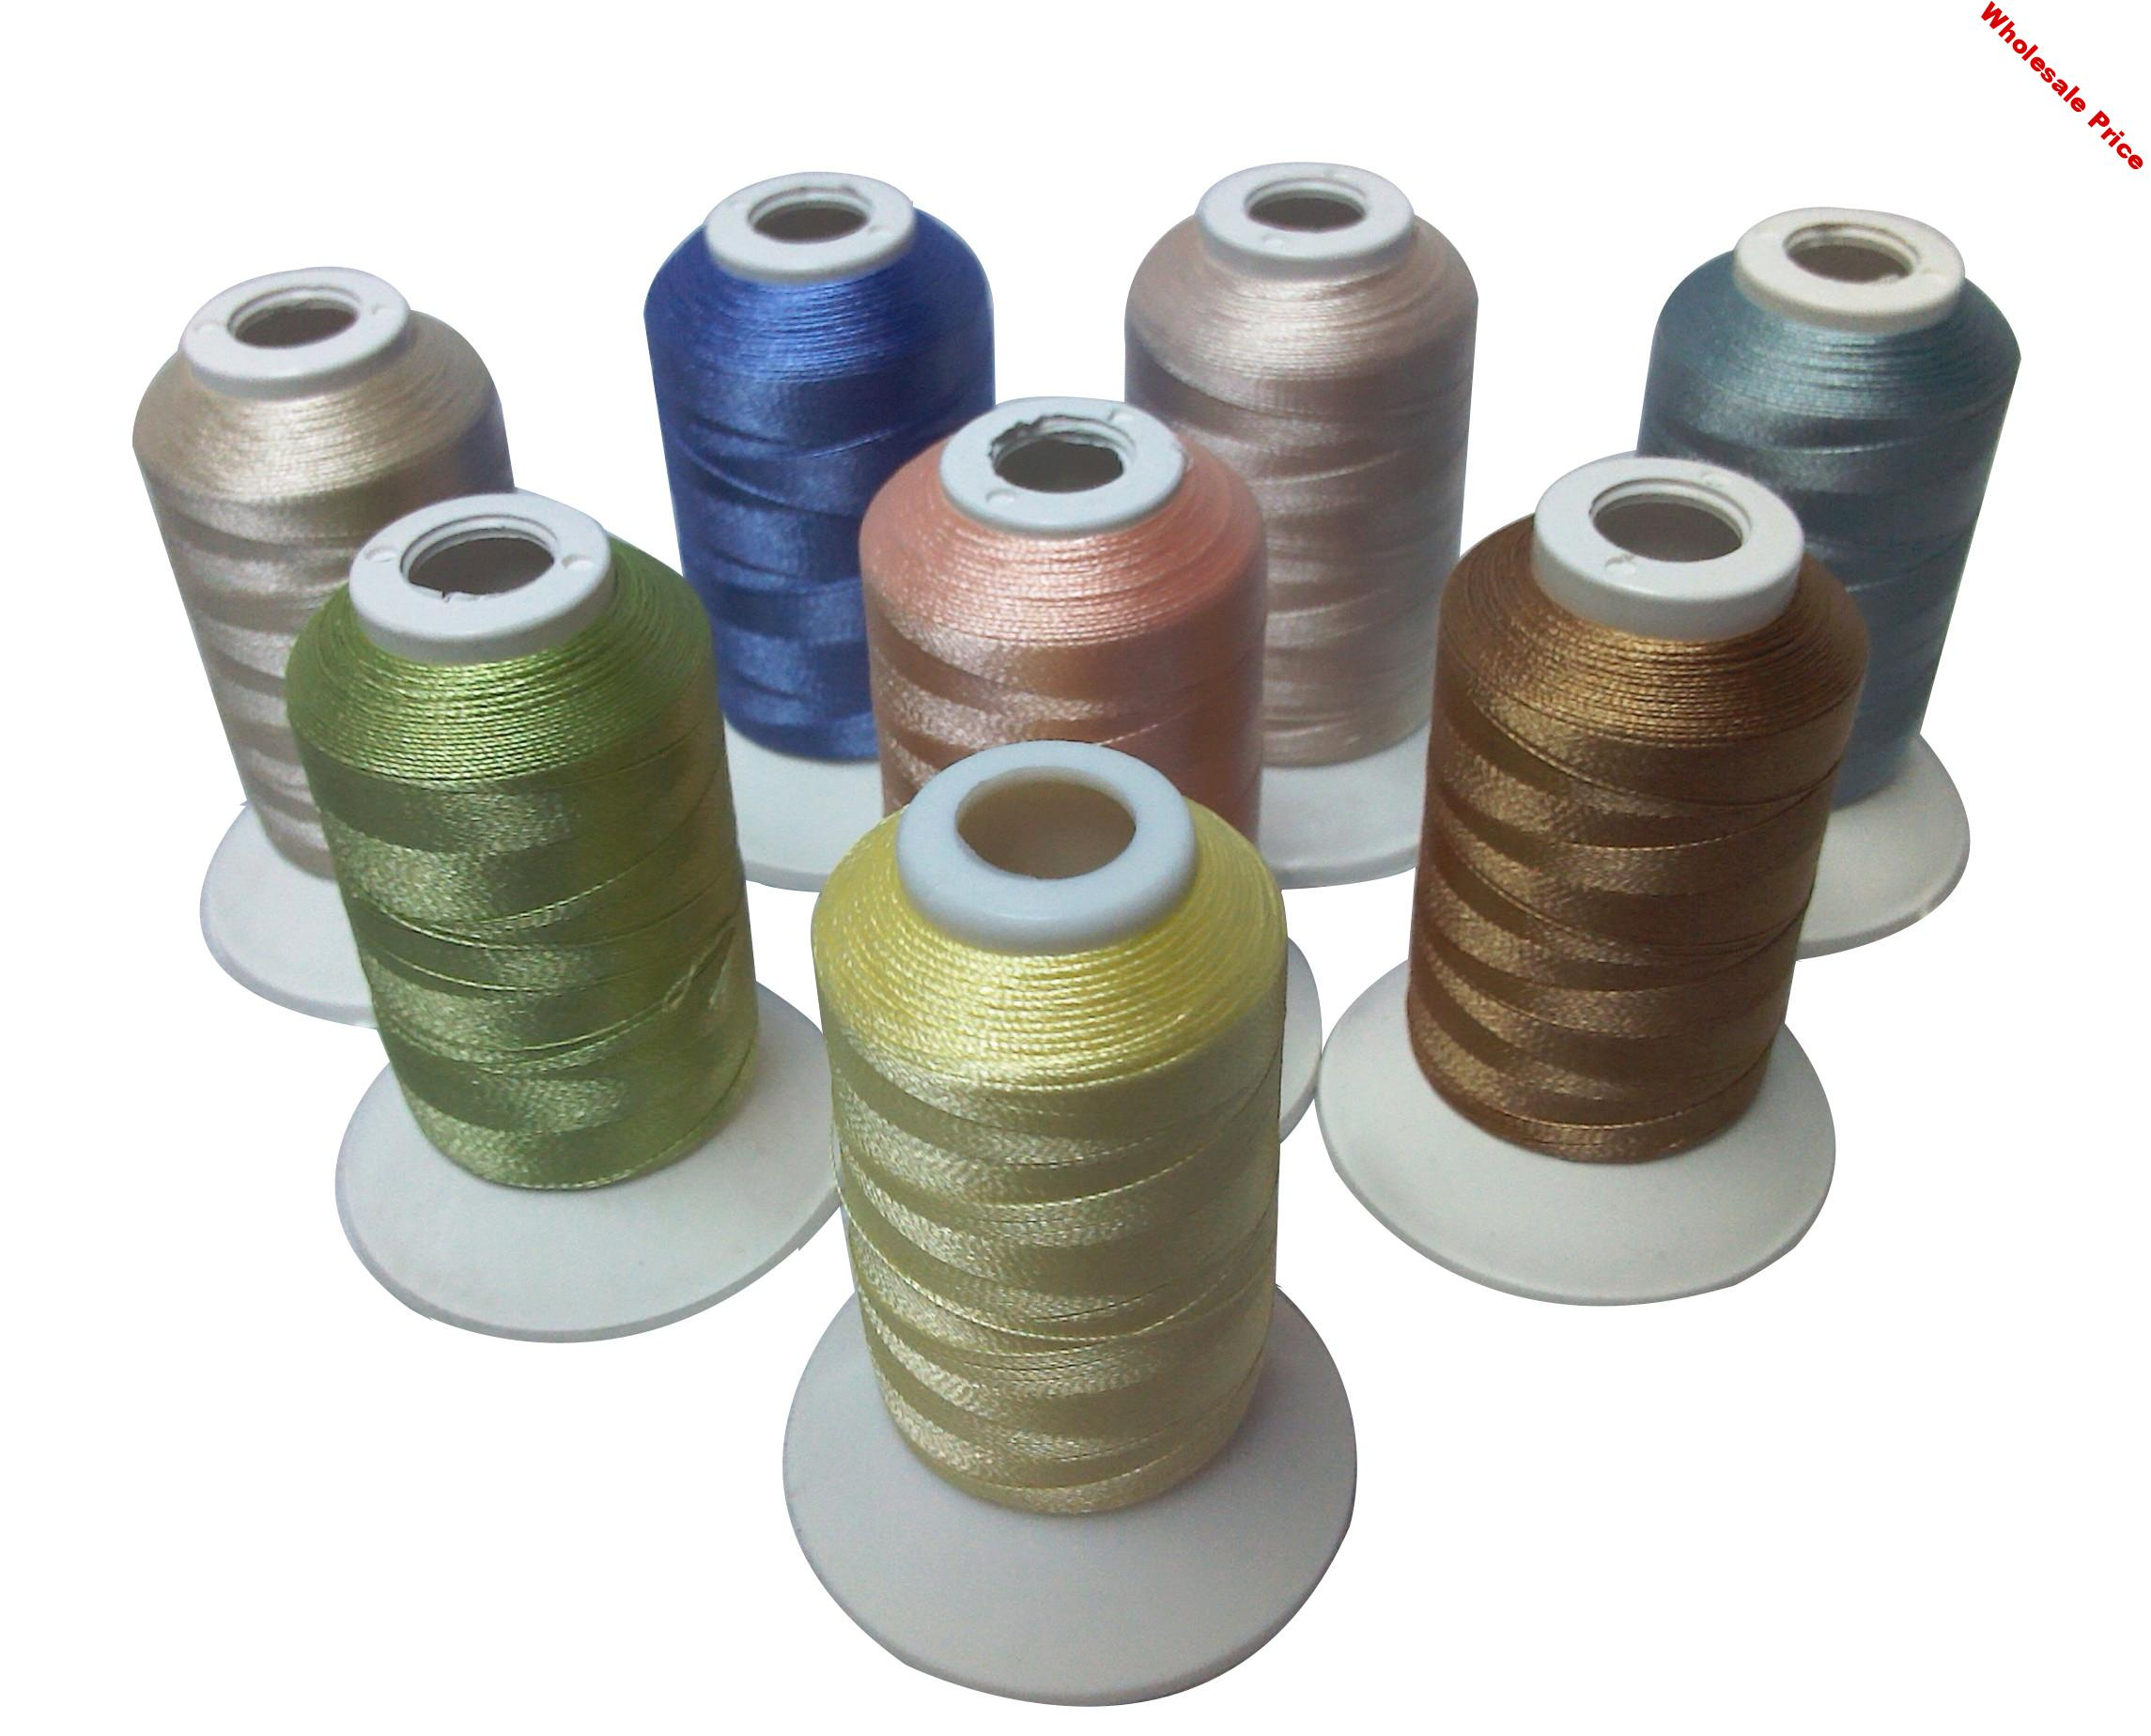 8 Colors Trilobal Polyester Embroidery Machine Thread for Brother Babylock Janome Singer Pfaff Husqvarna Bernina Machines